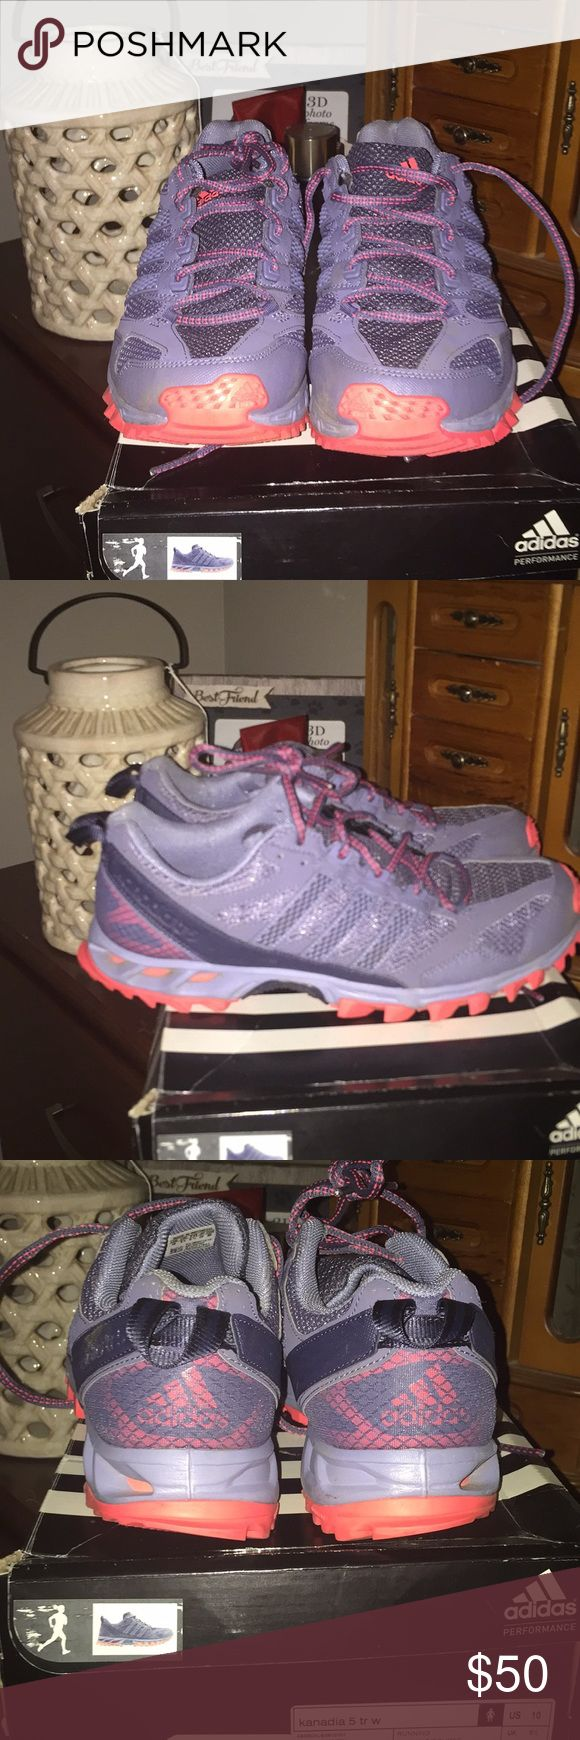 Adidas Running Shoes I bought these and decided I didn't like them as much as my Adidas Bounce they are in new condition only worn around the house less than 5 times they do come with box TV $75 adidas Shoes Athletic Shoes